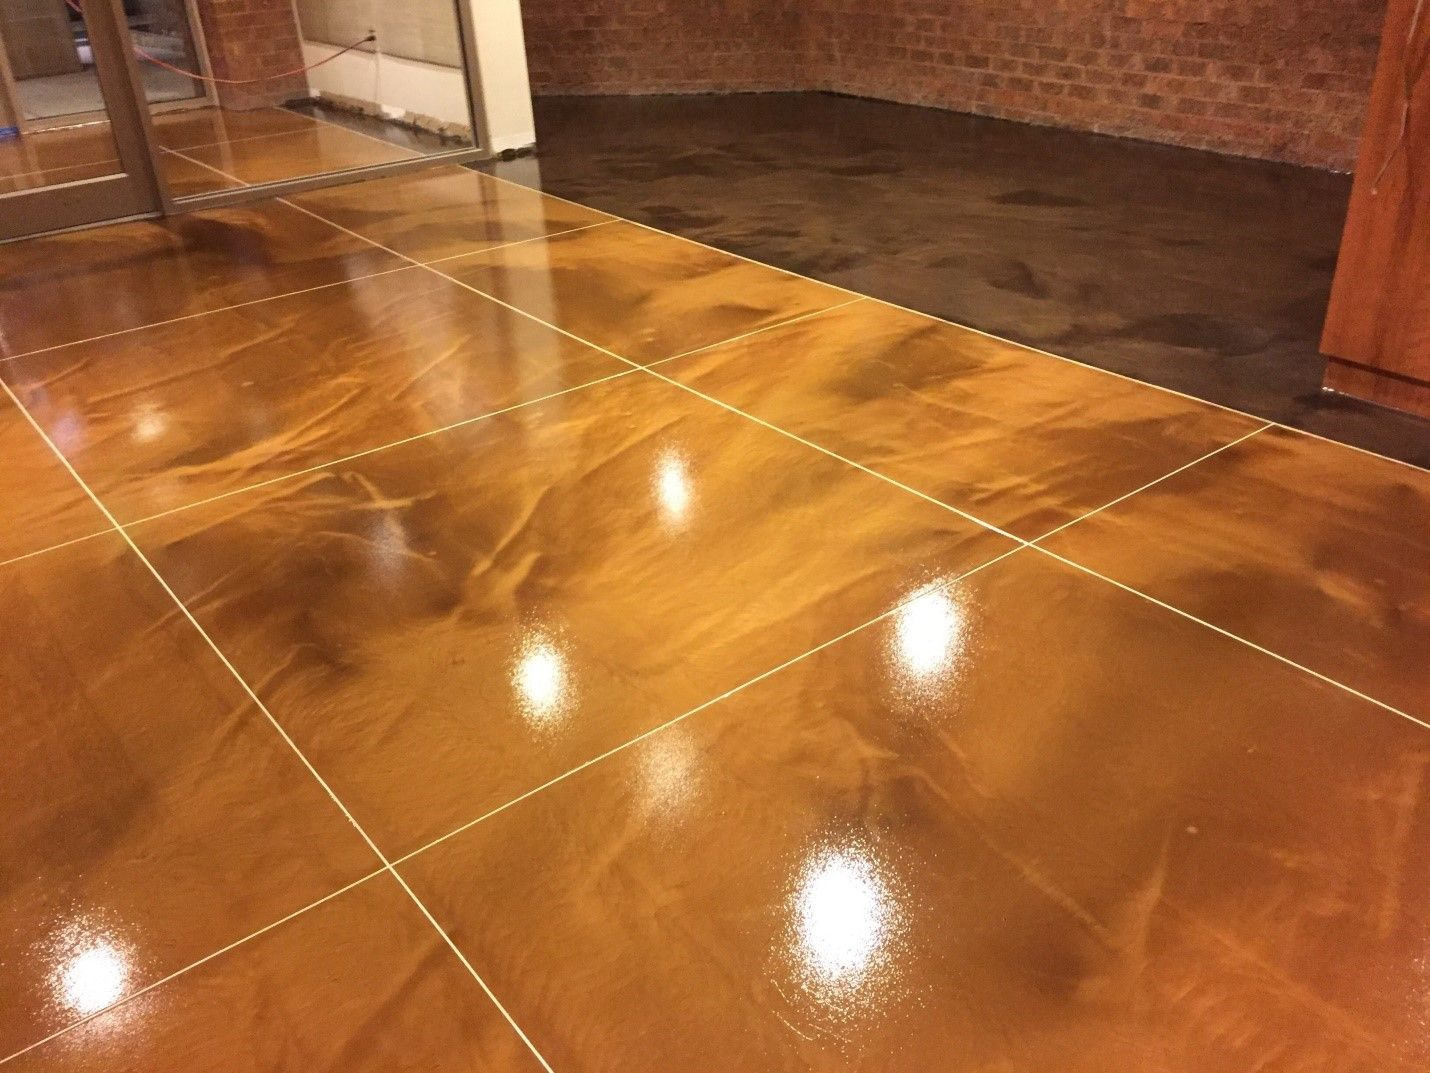 Epoxy Floors Metrocrete Concrete Flooring Contractors Garage Floor Coatings Floor Coating Garage Floor Paint